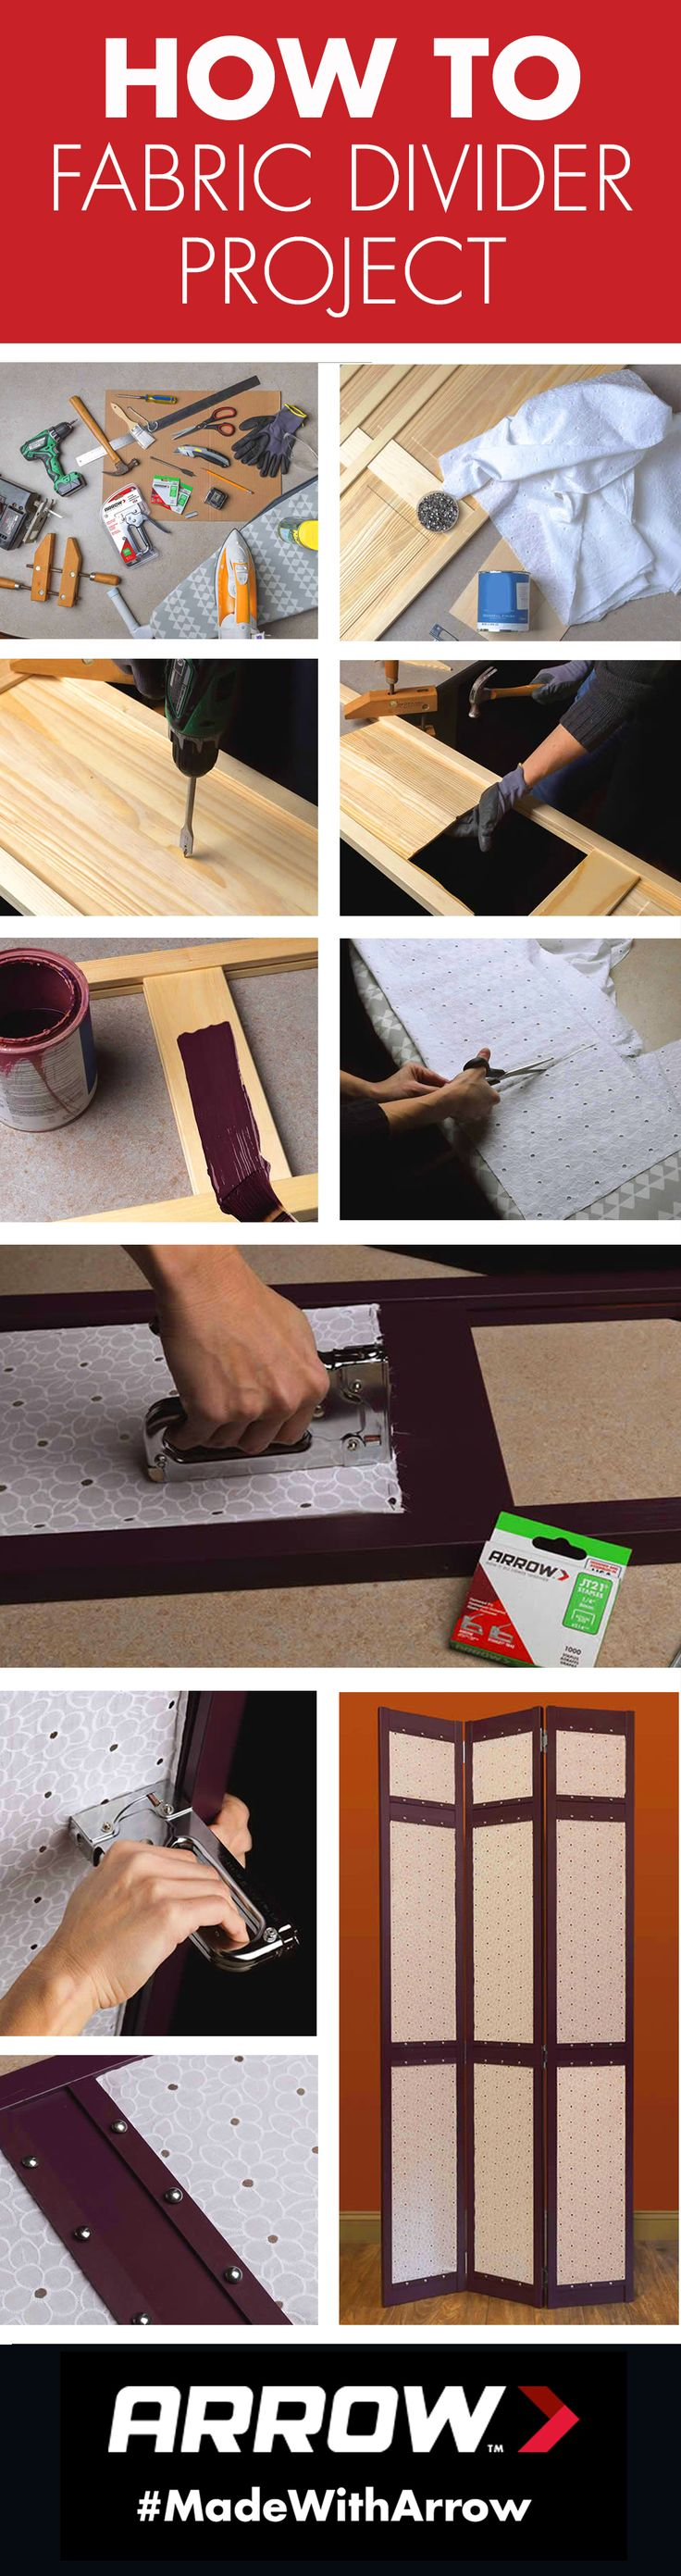 Create a gorgeous fabric divider for your home using Arrow's JT21CM staple gun! This easy DIY project adds extra style and privacy to any room, and it can easily be tackled in an afternoon. Click to read the full tutorial! www.arrowfastener.com